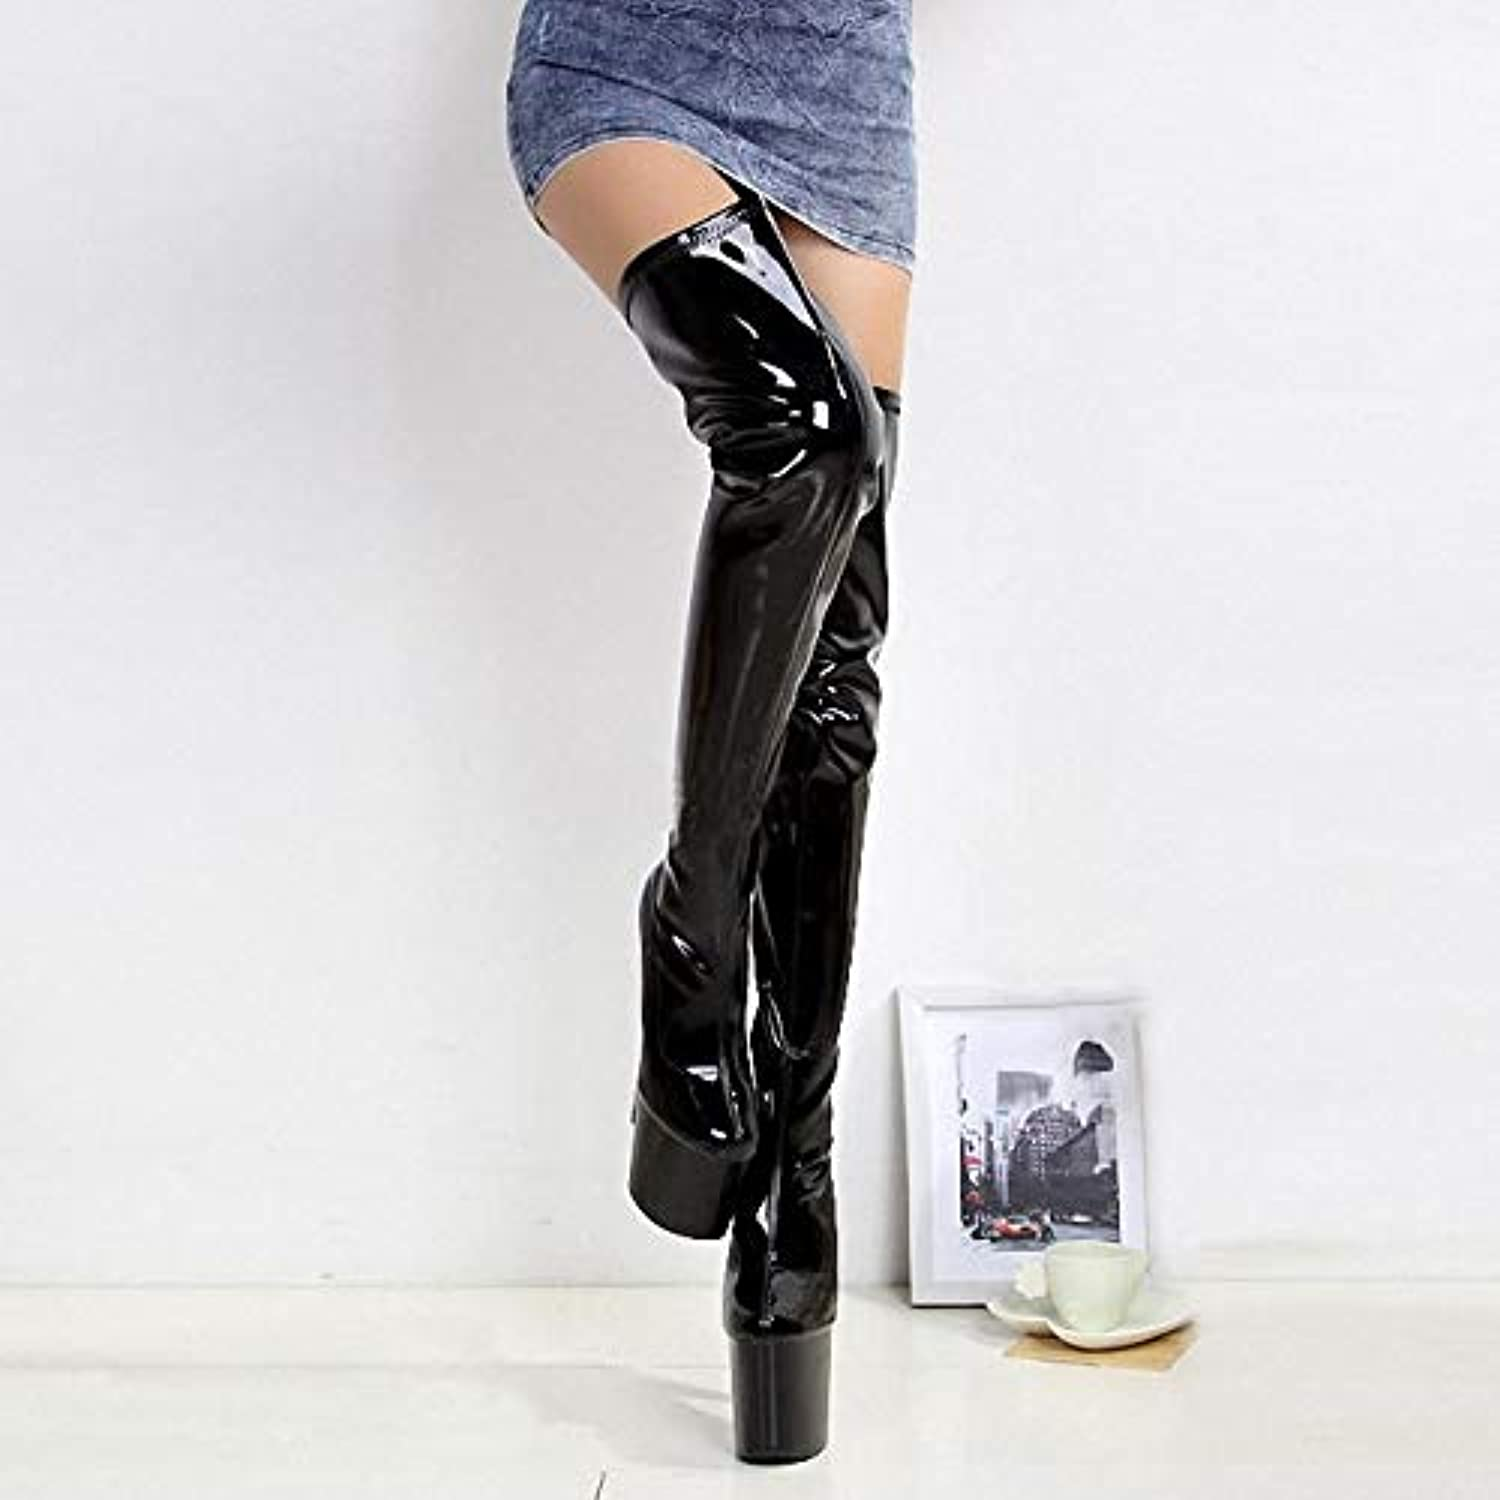 Women's Sexy Boots Patent Leather Spring Summer Fall Fashion Boots Club shoes Boots Stiletto Heel Platform Over The Knee Boots Party & Evening,A,US11 EU43 UK9 CN44